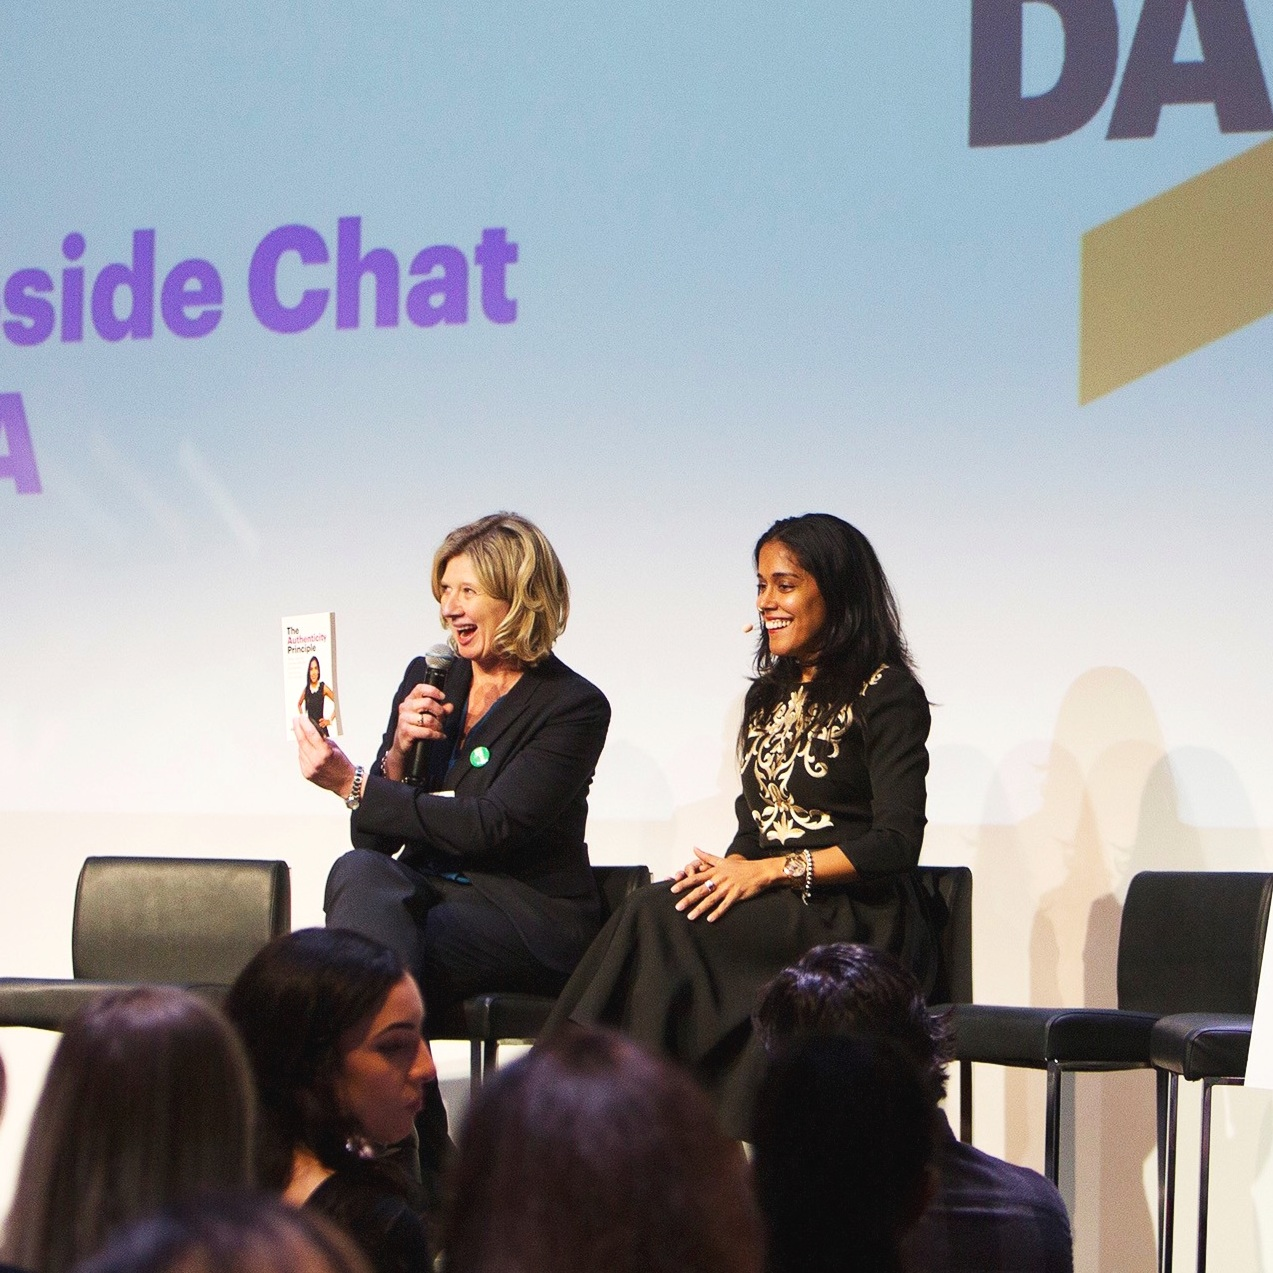 Ritu Bhasin sitting on stage with a blonde woman holding up a copy of Ritu's book The Authenticity Principle.